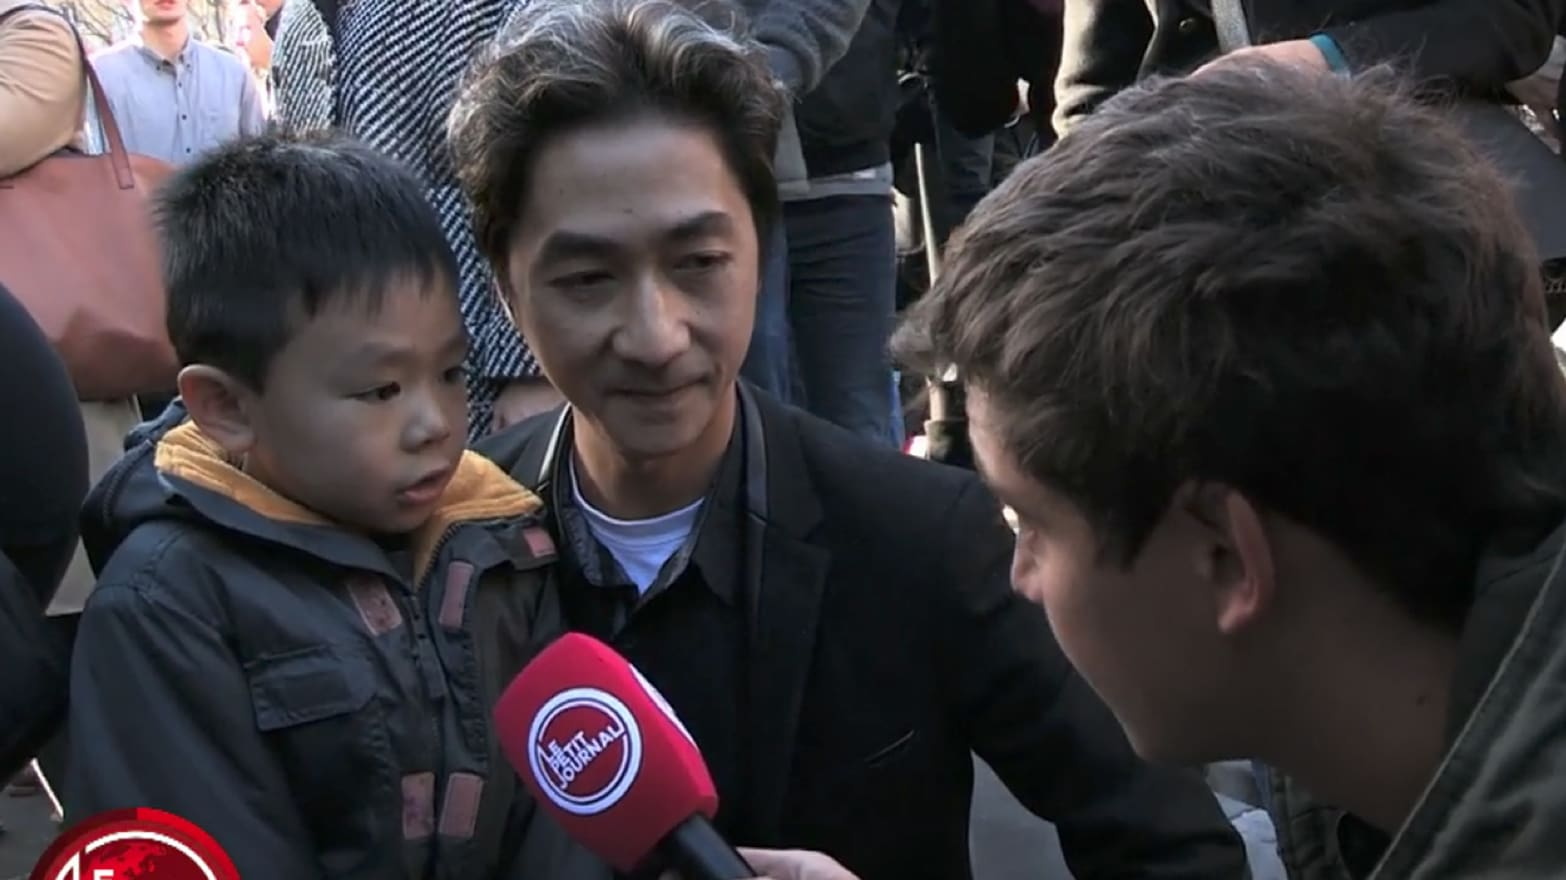 This Father Explaining The Paris Attacks To His Young Son